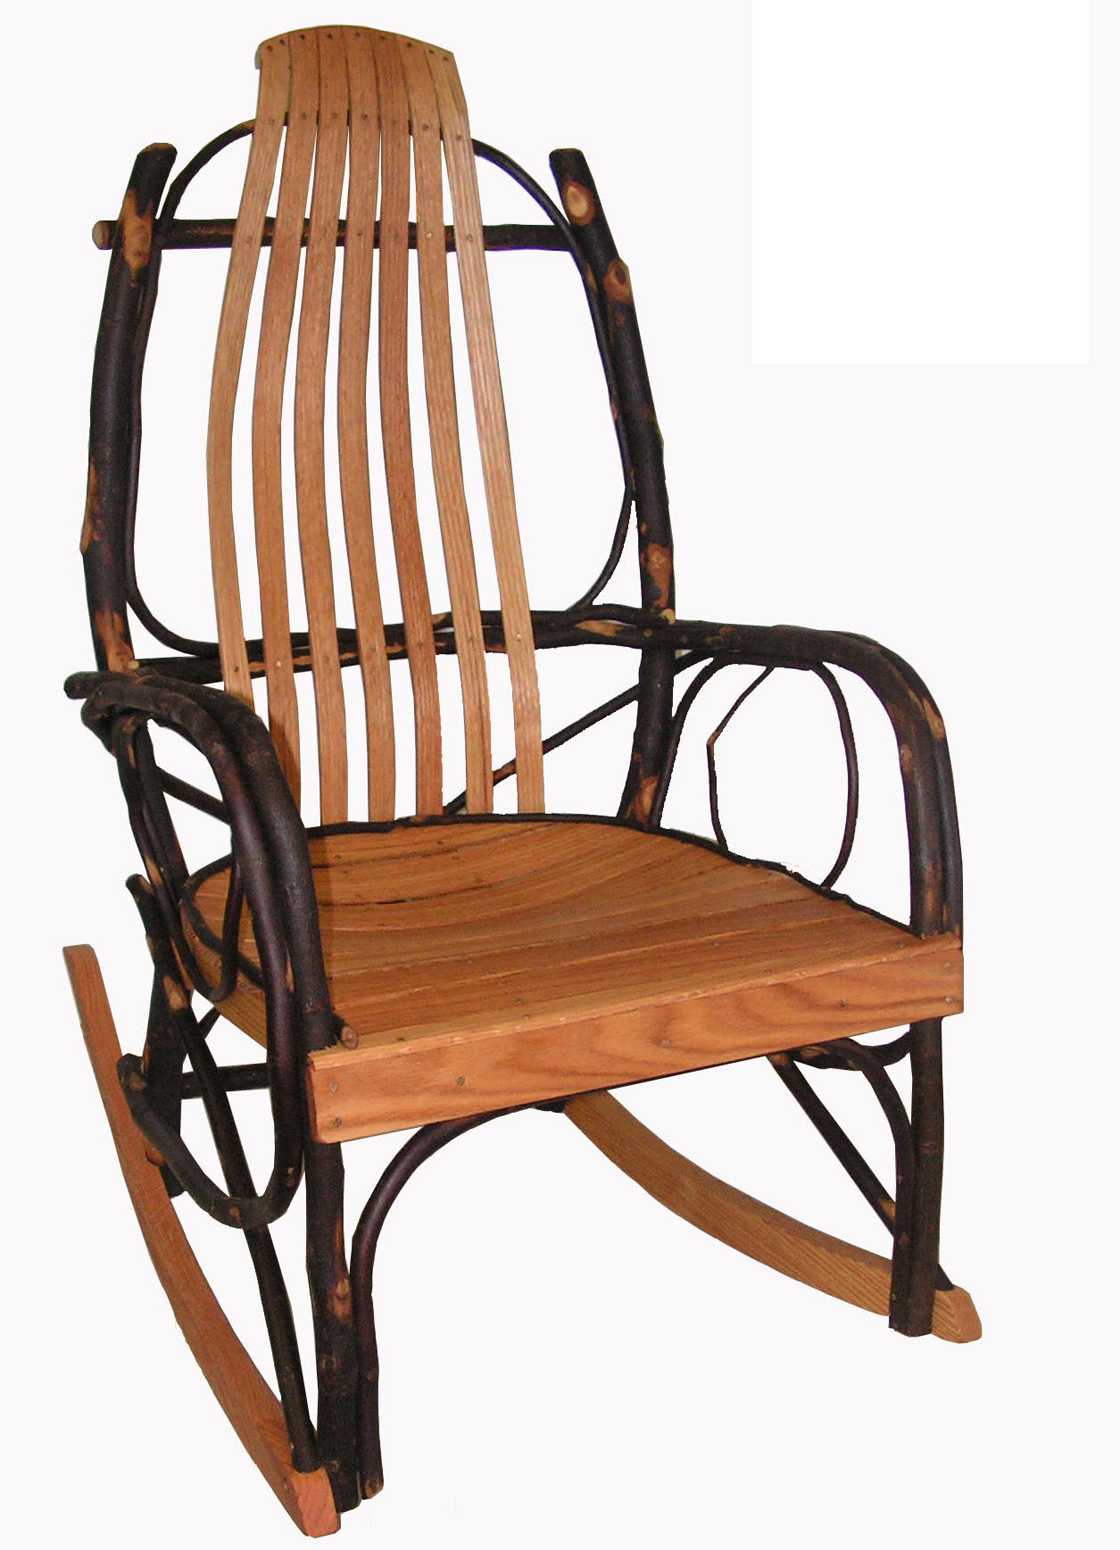 amish made rocking chair cushions covers to measure hickory and oak bentwood rocker